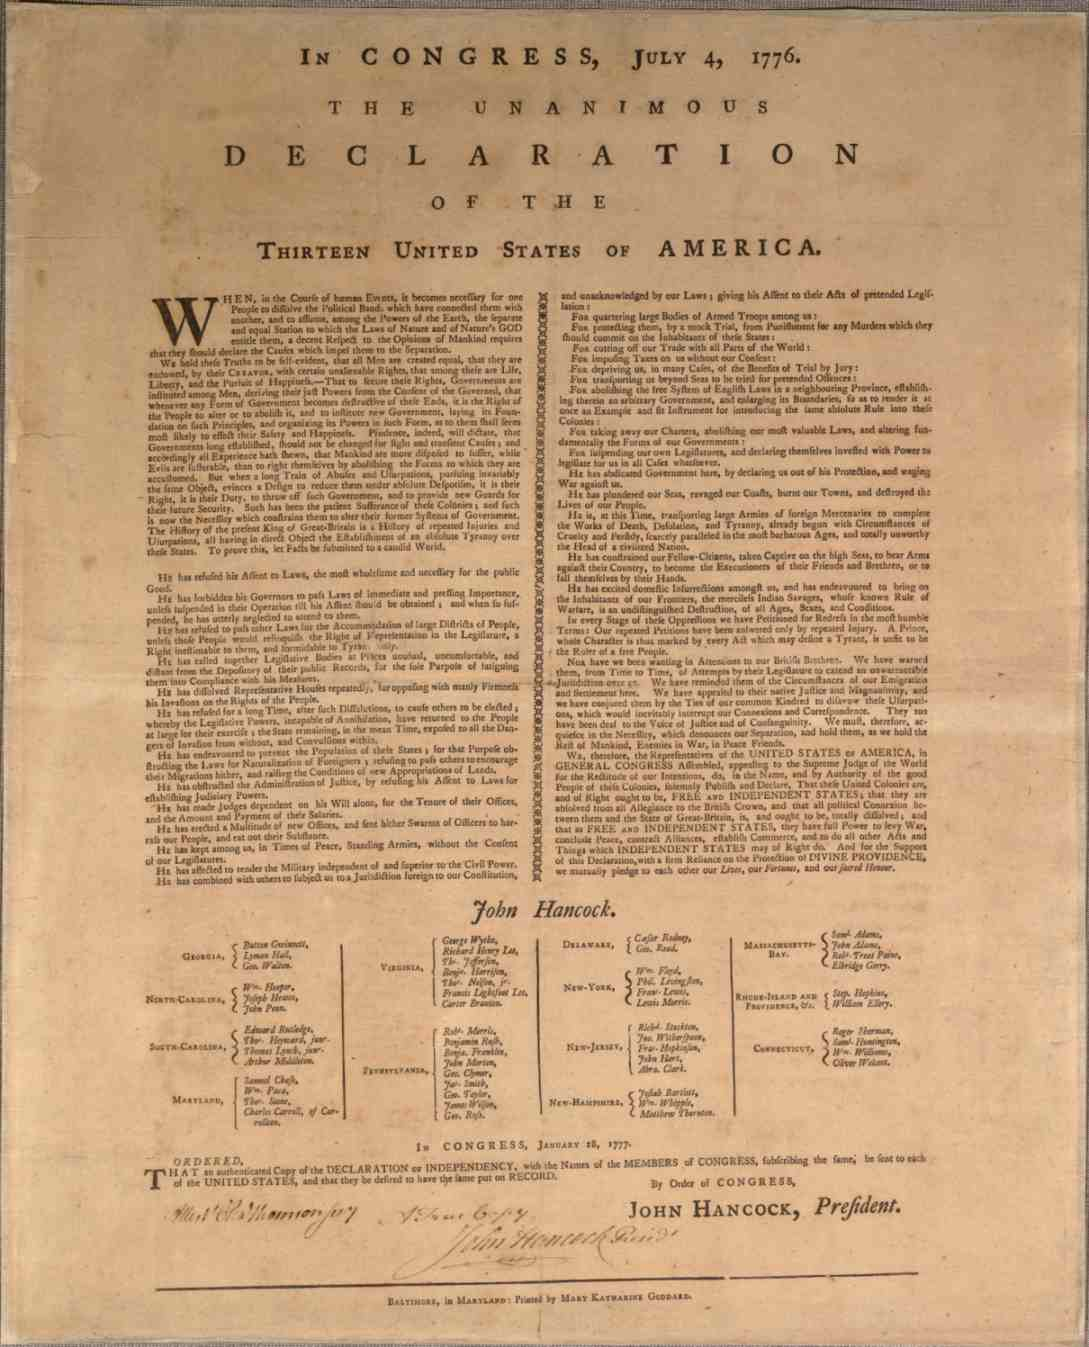 Mary Katherine Goddard Declaration of Independence